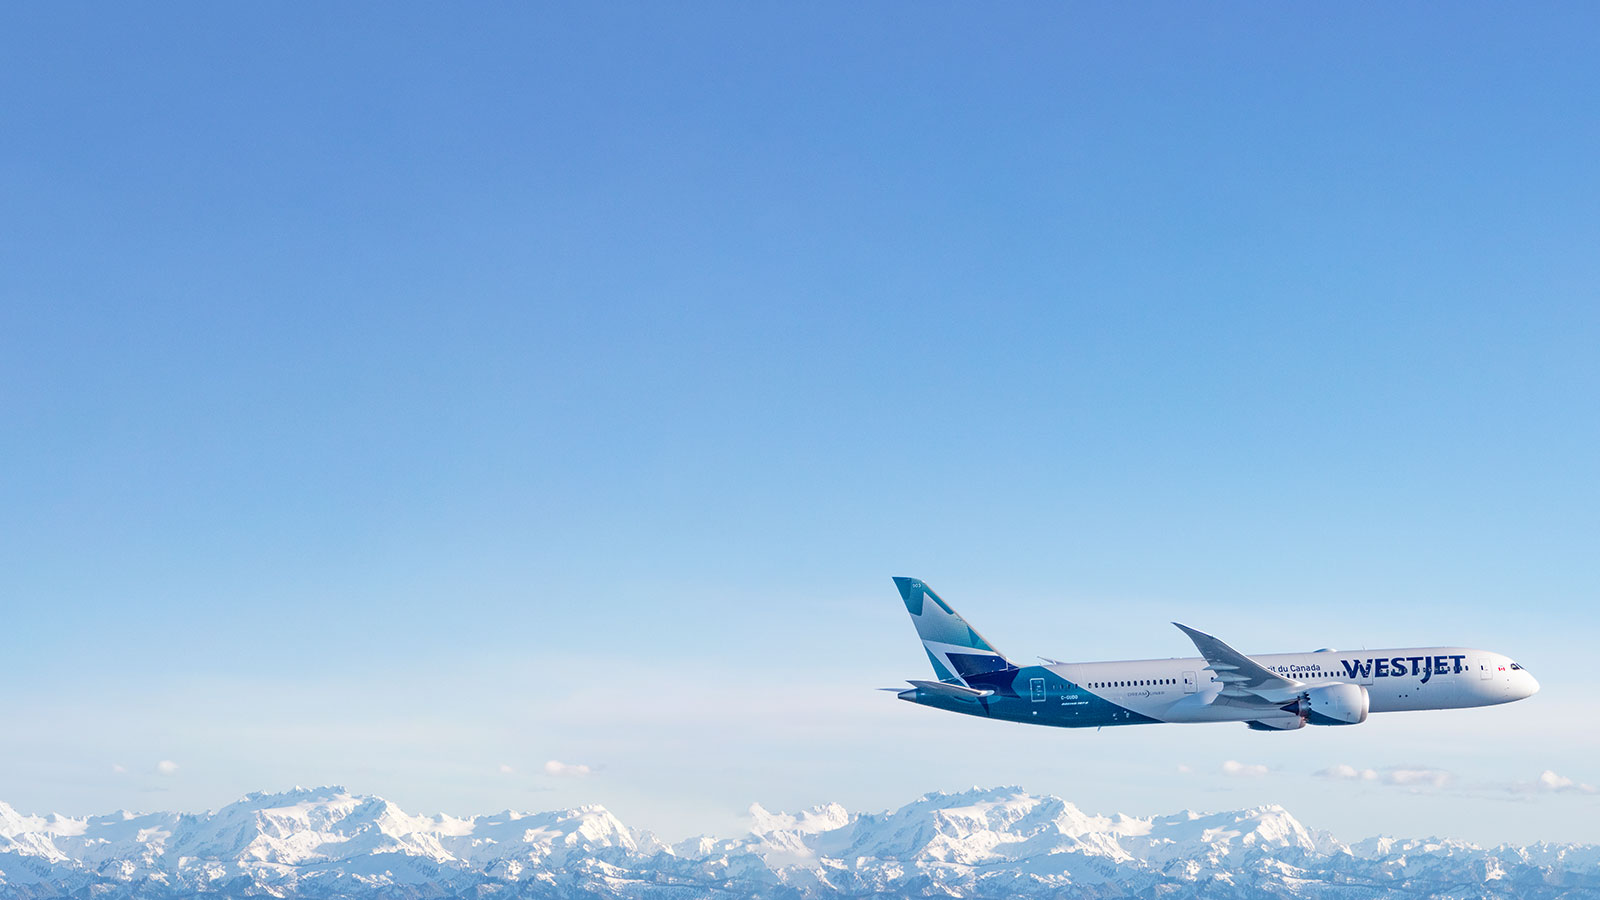 WestJet aircraft flying over the mountains.